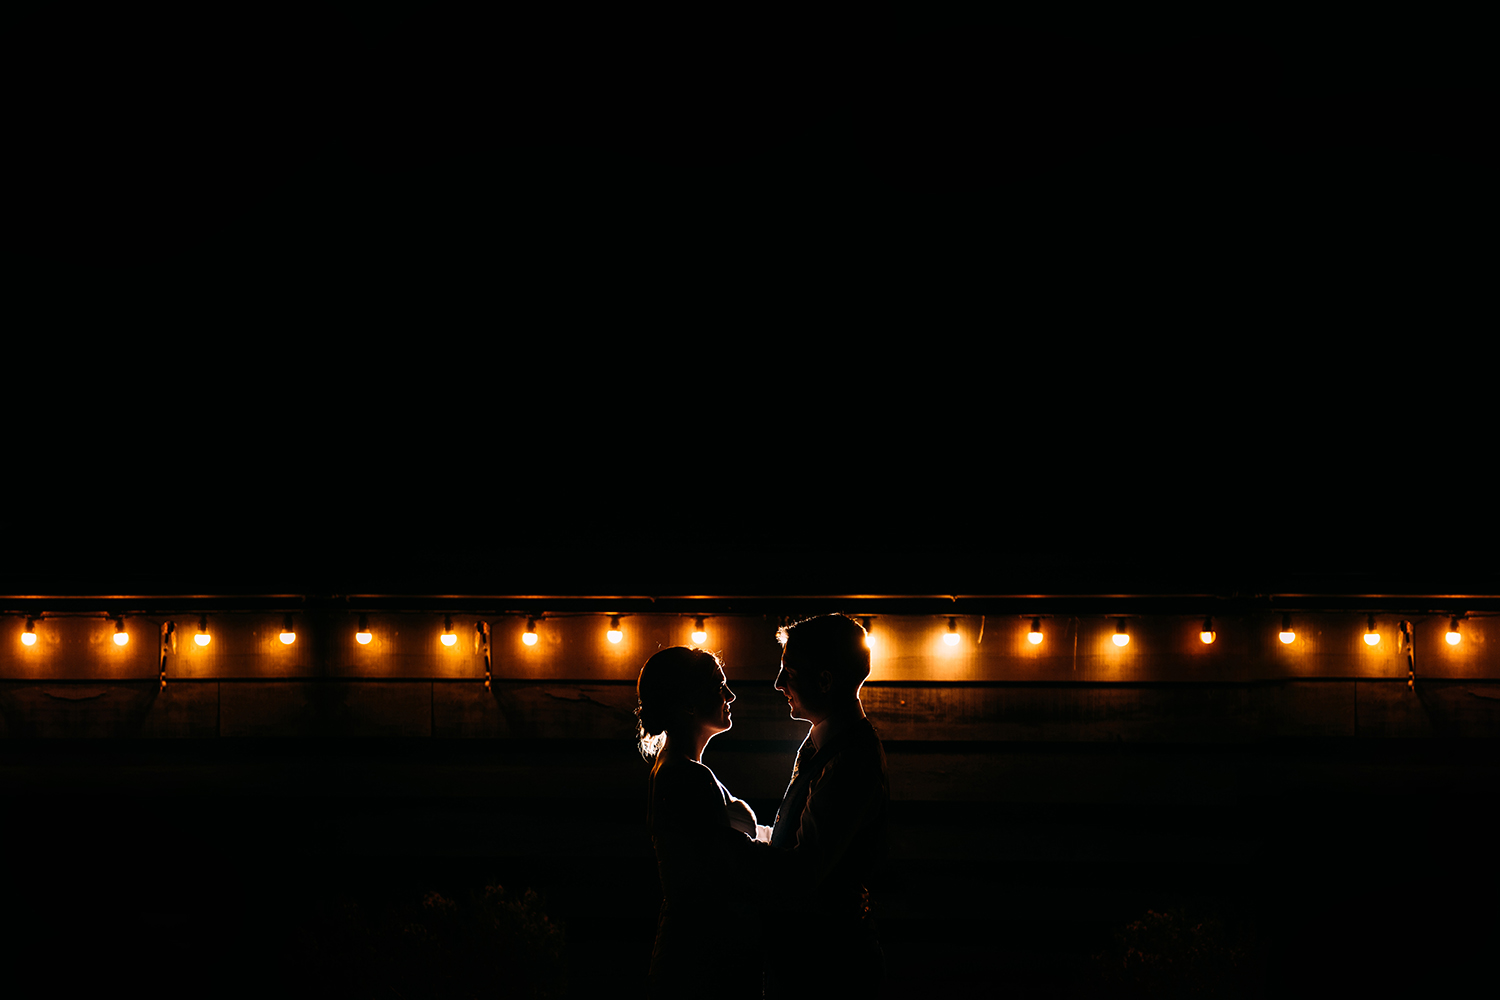 bride and groom night time portrait in front of some light bulbs